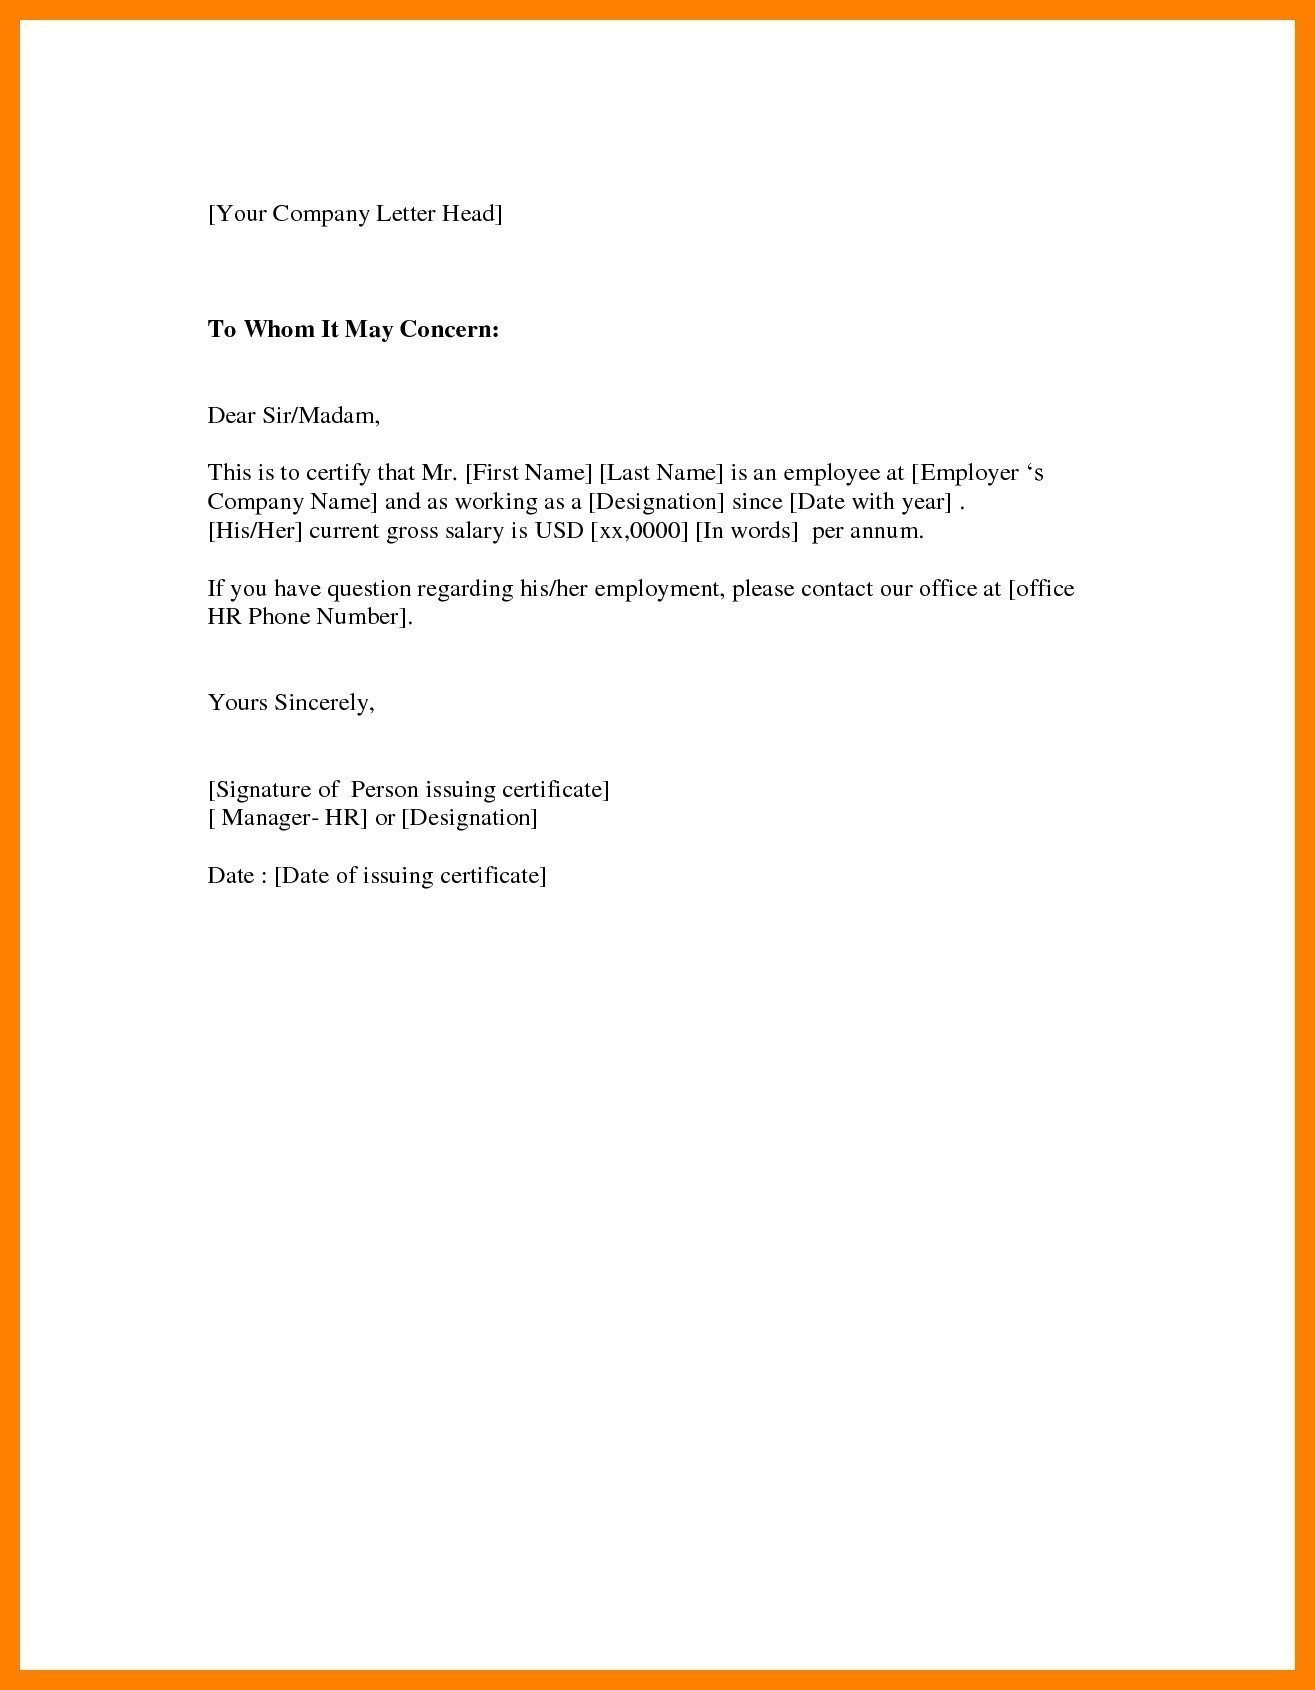 Employment verification letter to whom it may concern template employment verification letter to whom it may concern template salary certificate form 2018 new salary spiritdancerdesigns Images